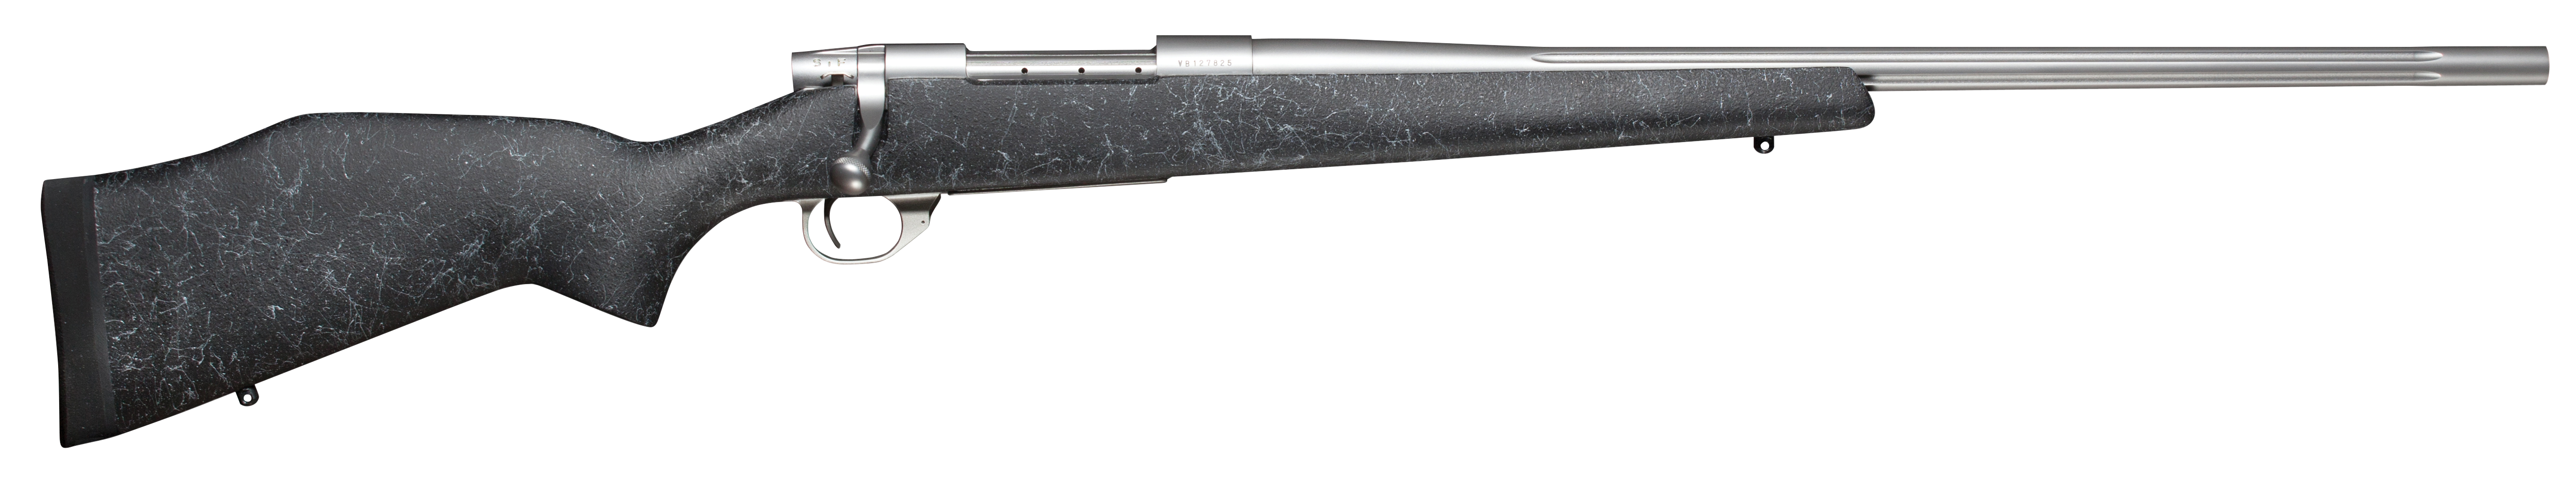 Weatherby Vanguard Accuguard 300 Wby Mag 26